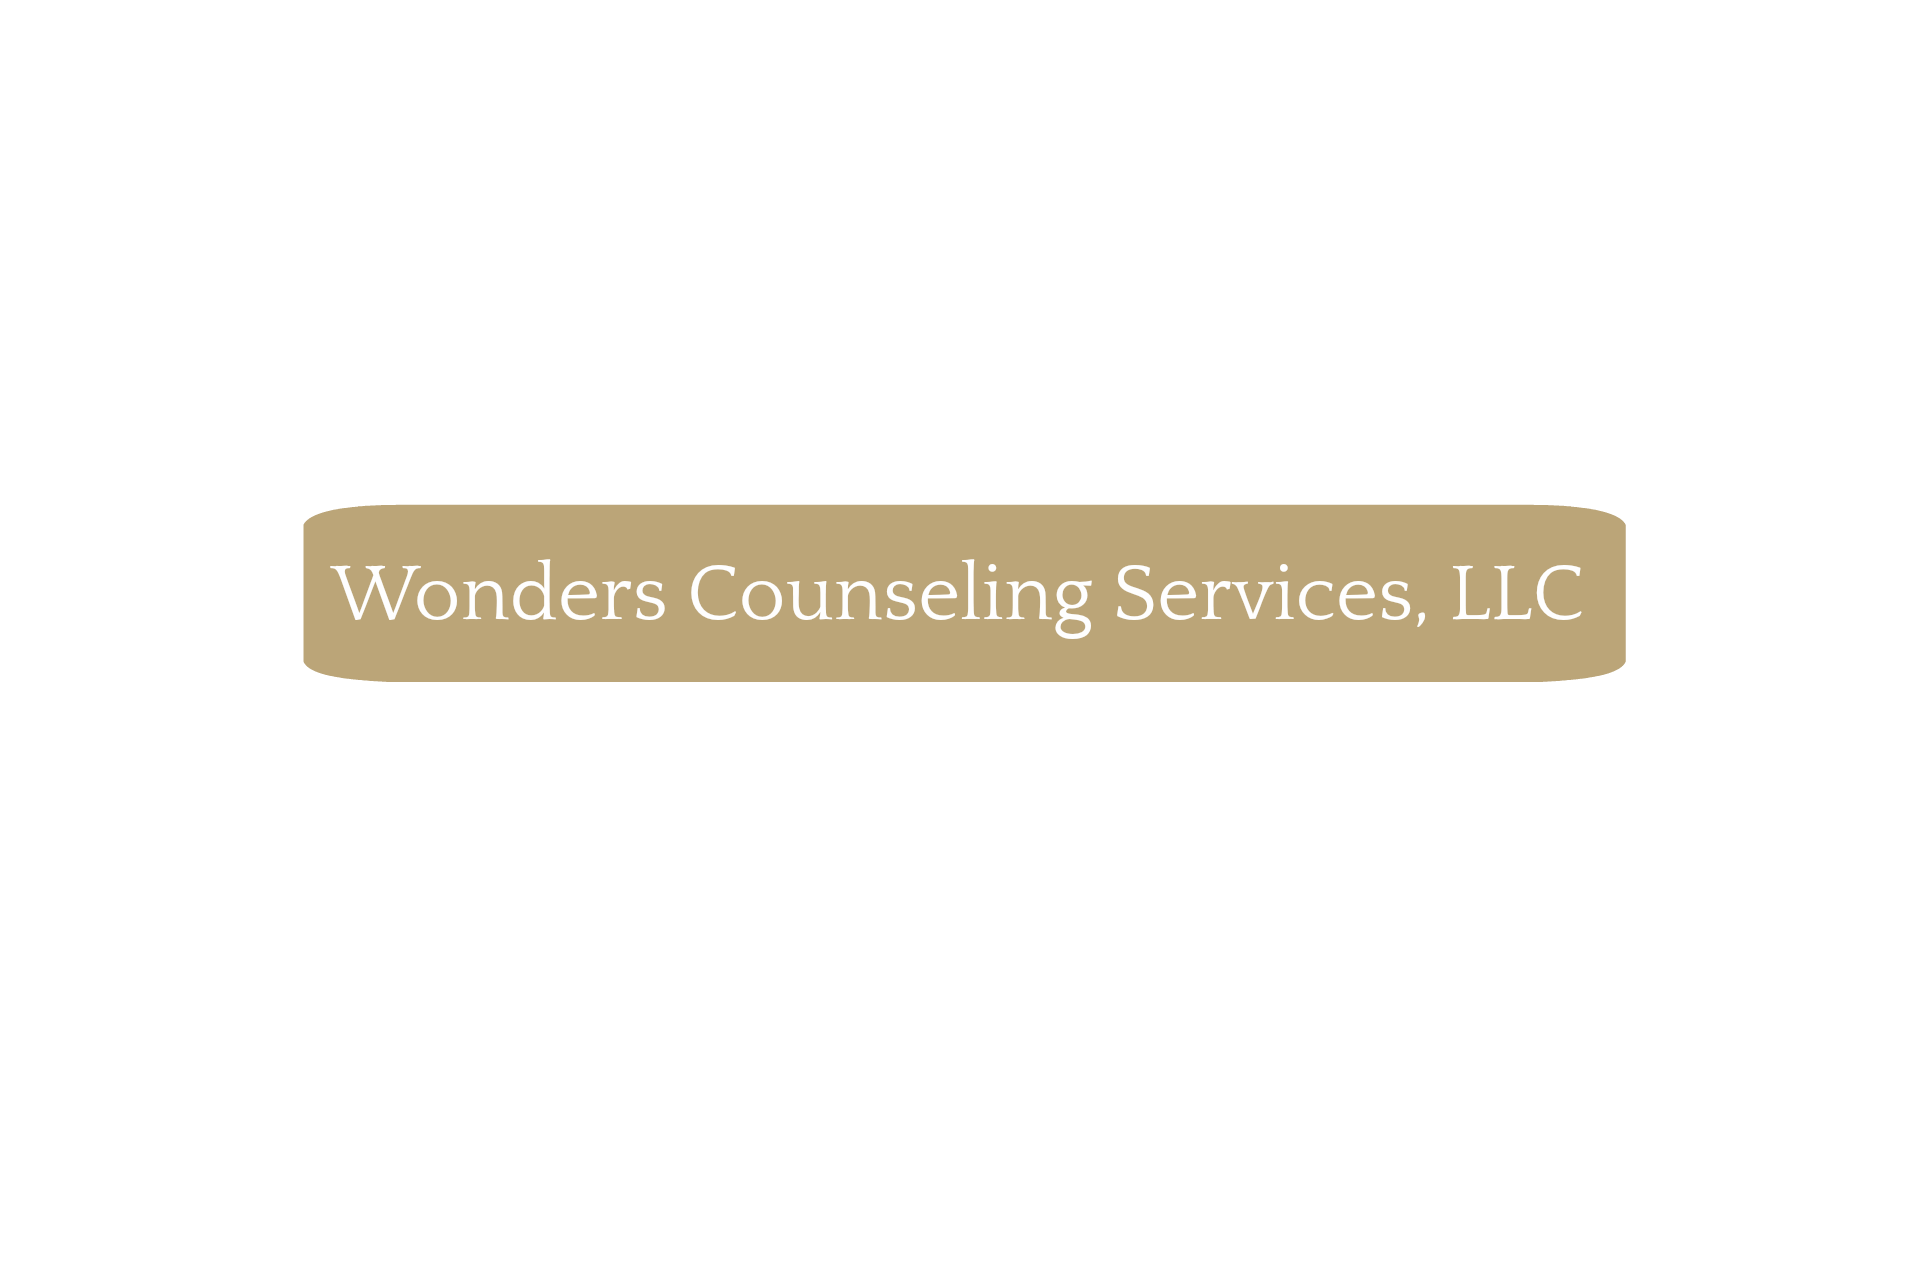 Wonders Counseling Services